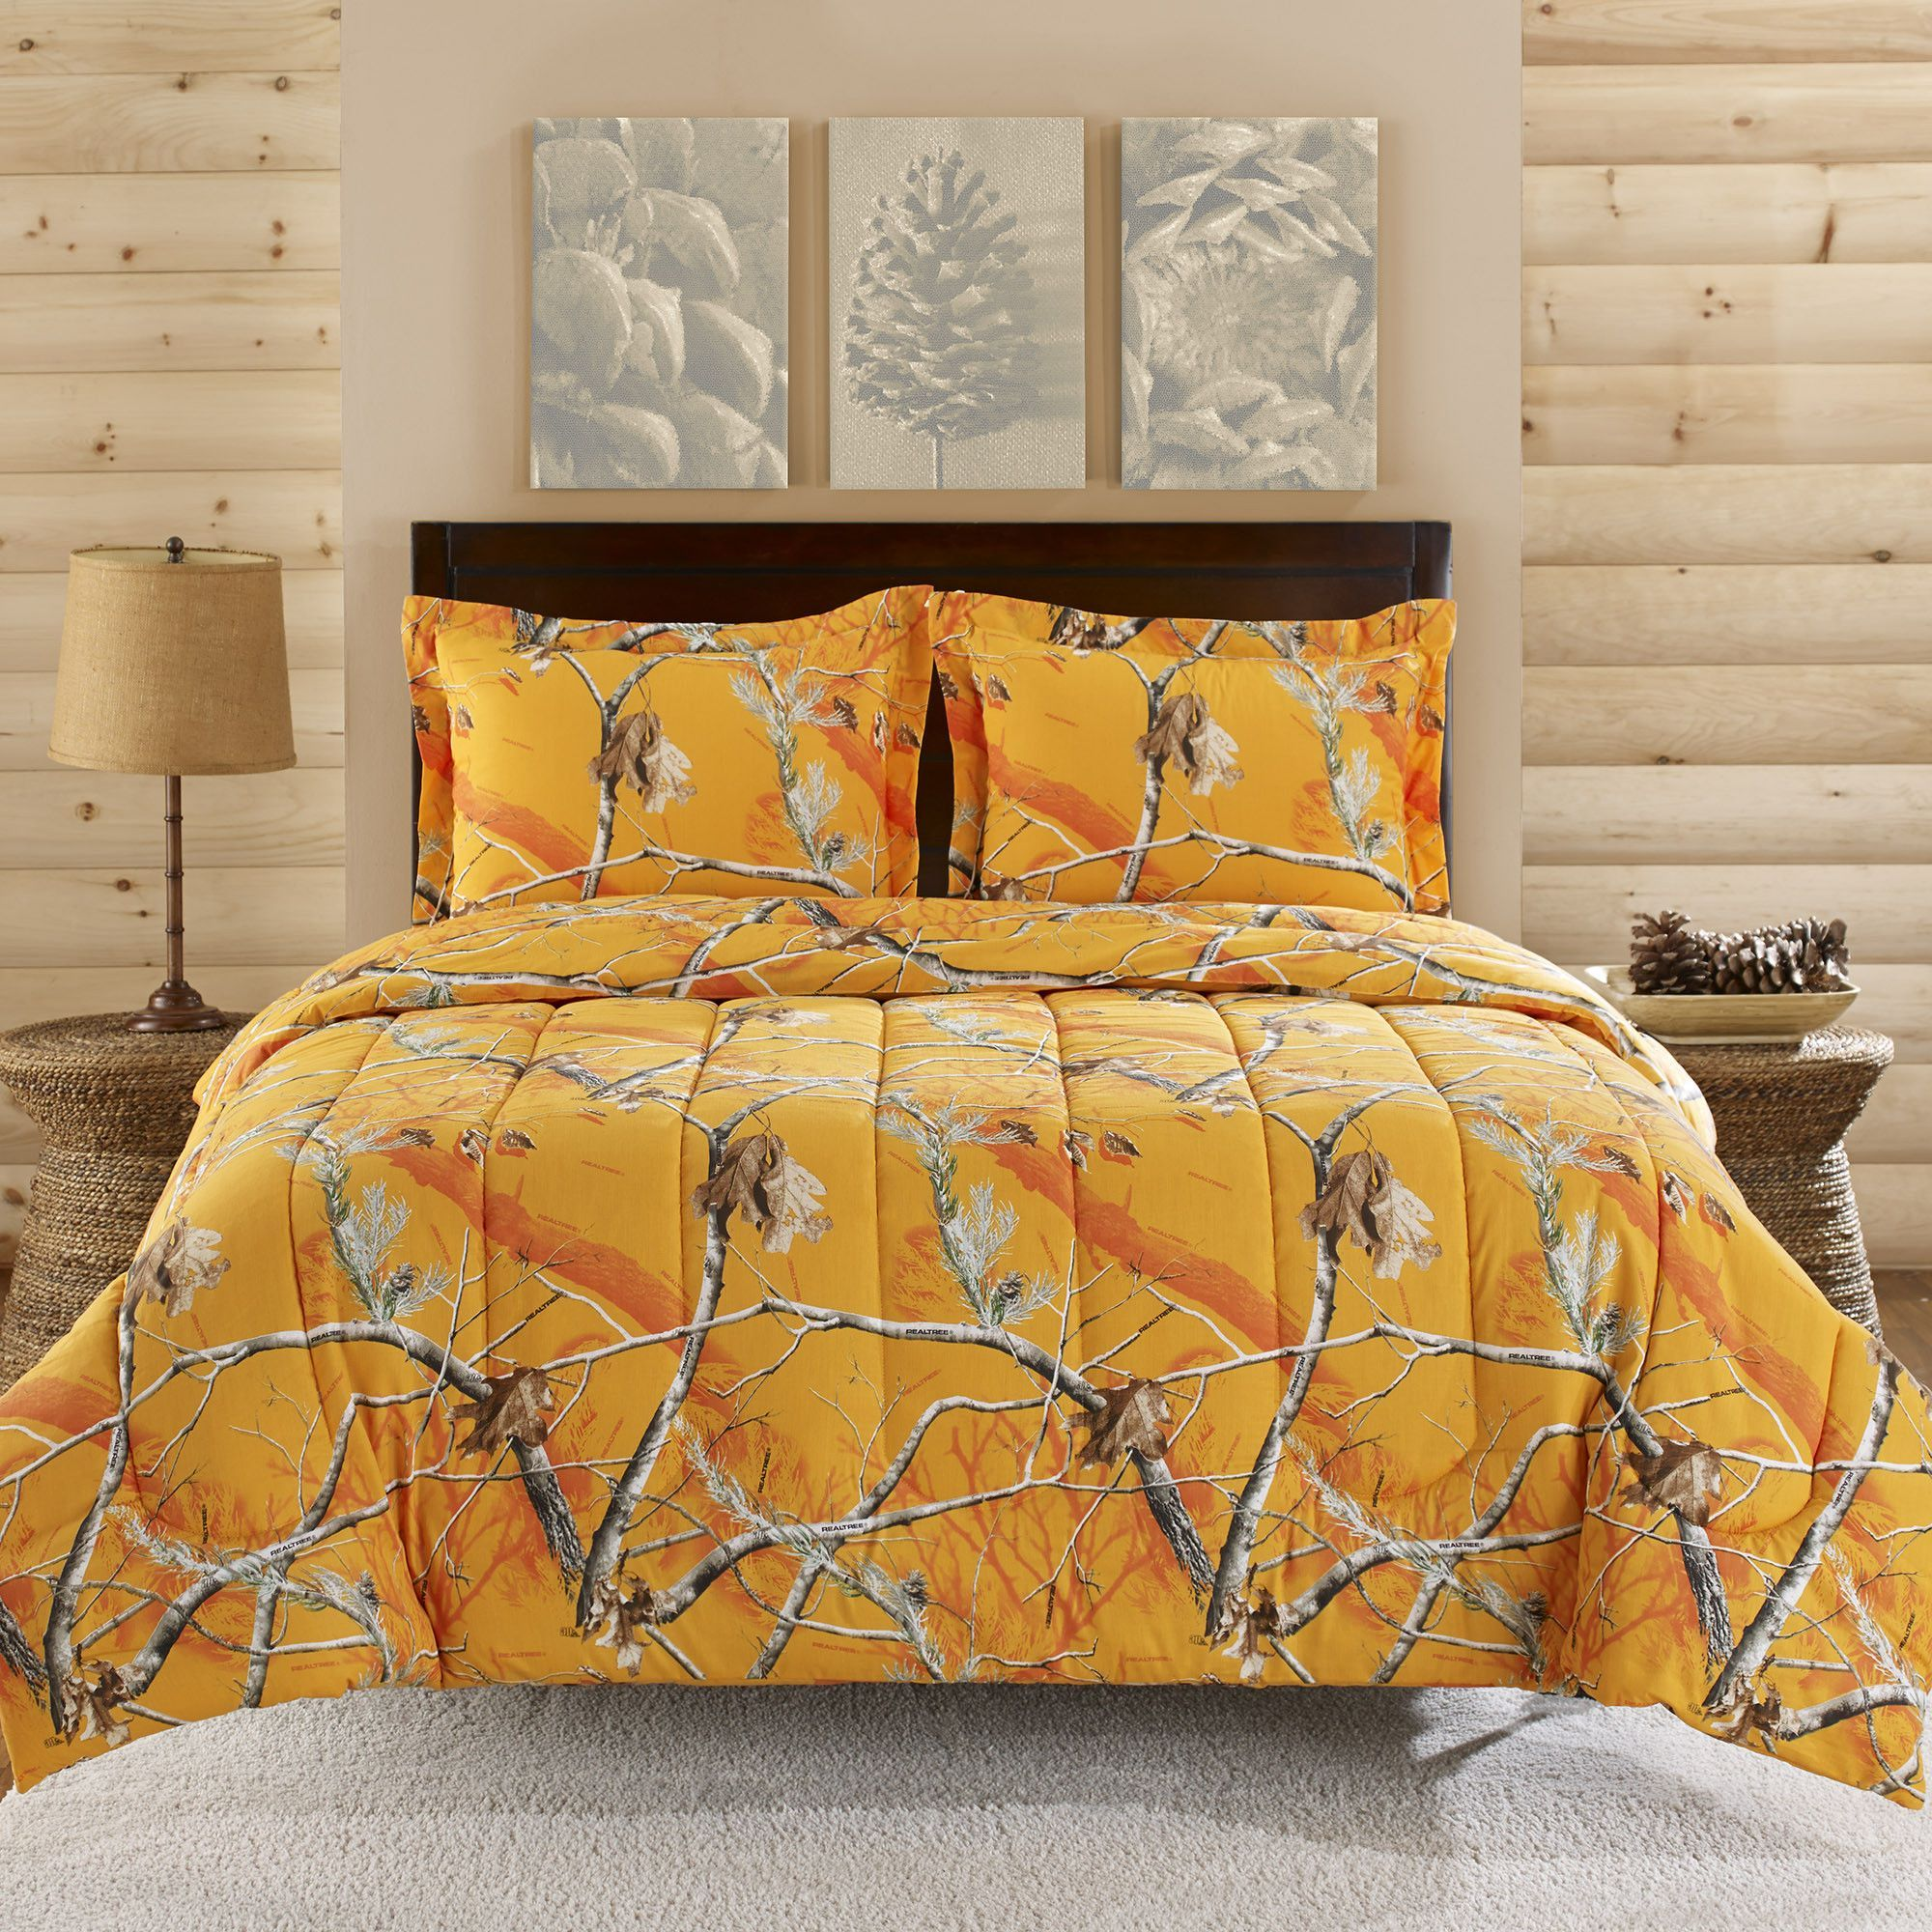 Realtree Comforter Mini Set Orange In 2019 Camo Bedding